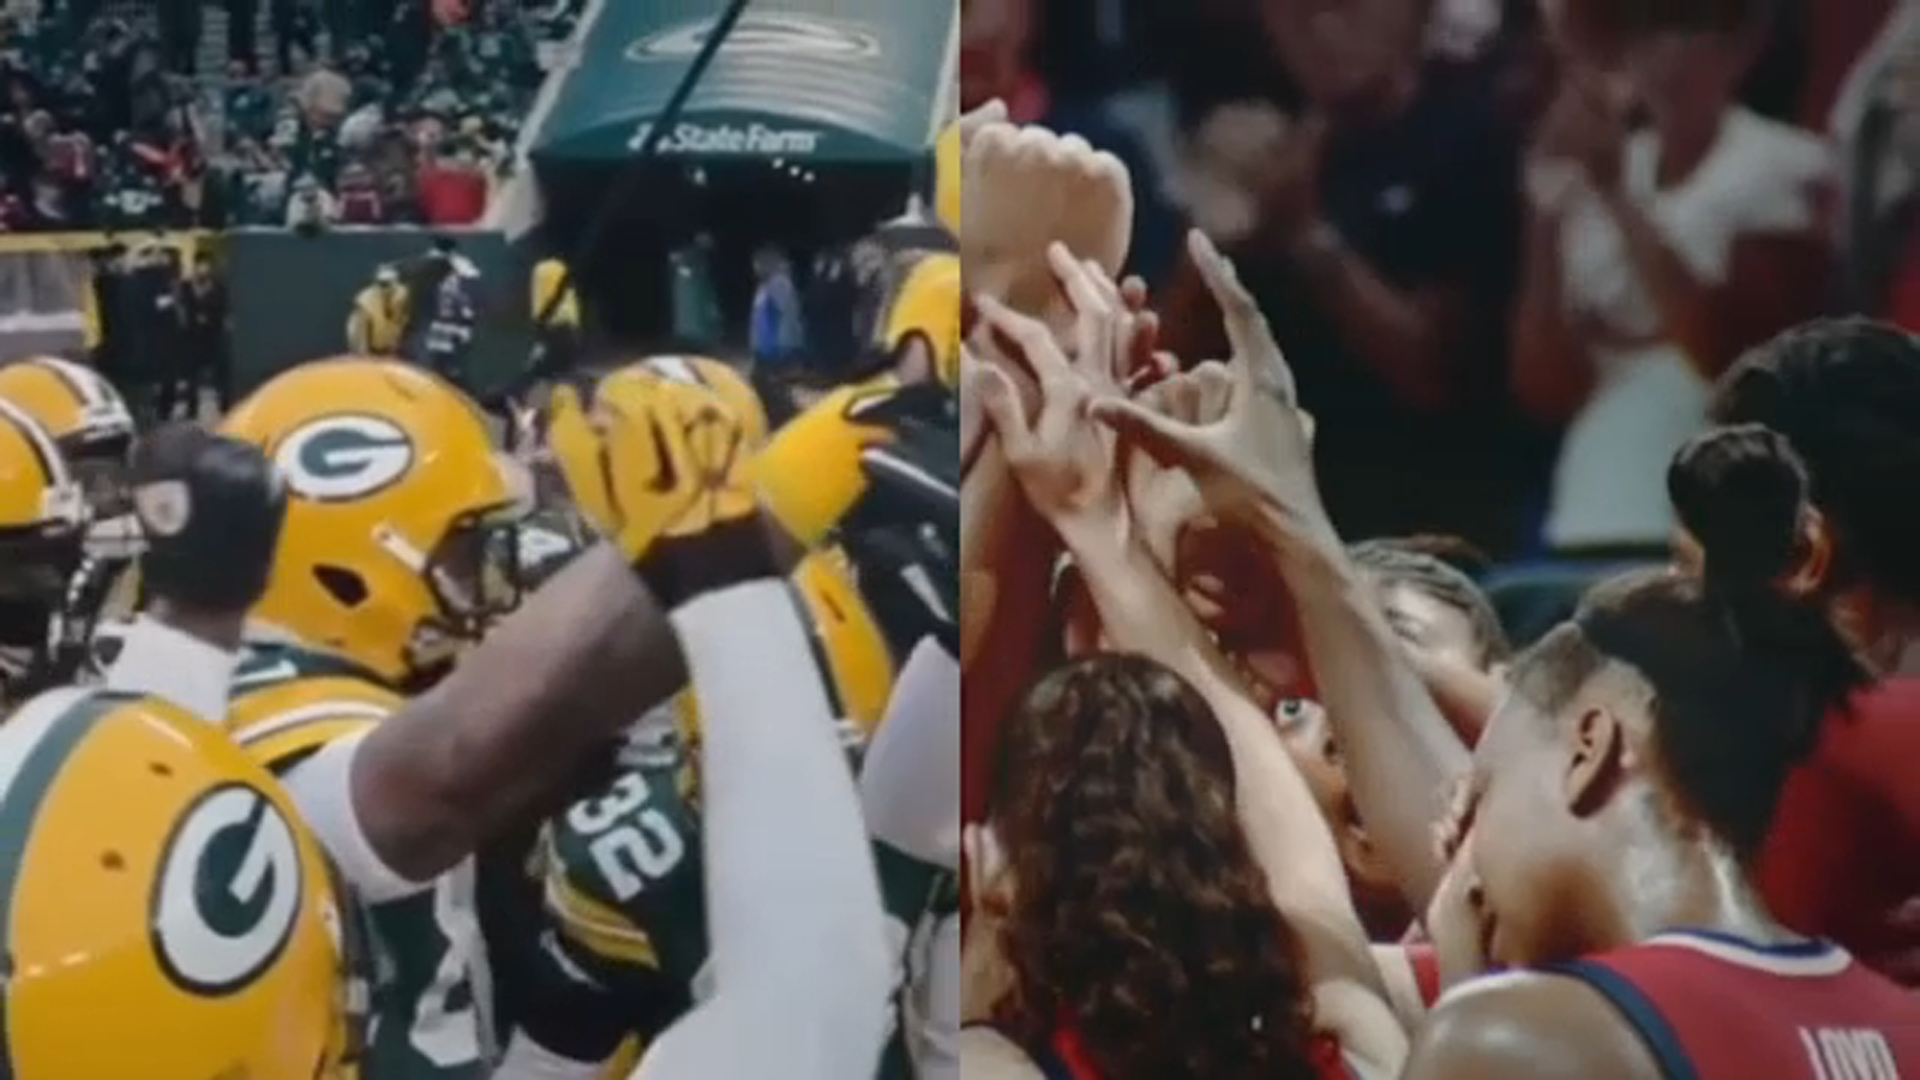 sueño Calvo escena  Nike released new ad featuring diverse sports athletes, Black Lives Matter  protests and COVID-19 healthcare workers - 6abc Philadelphia